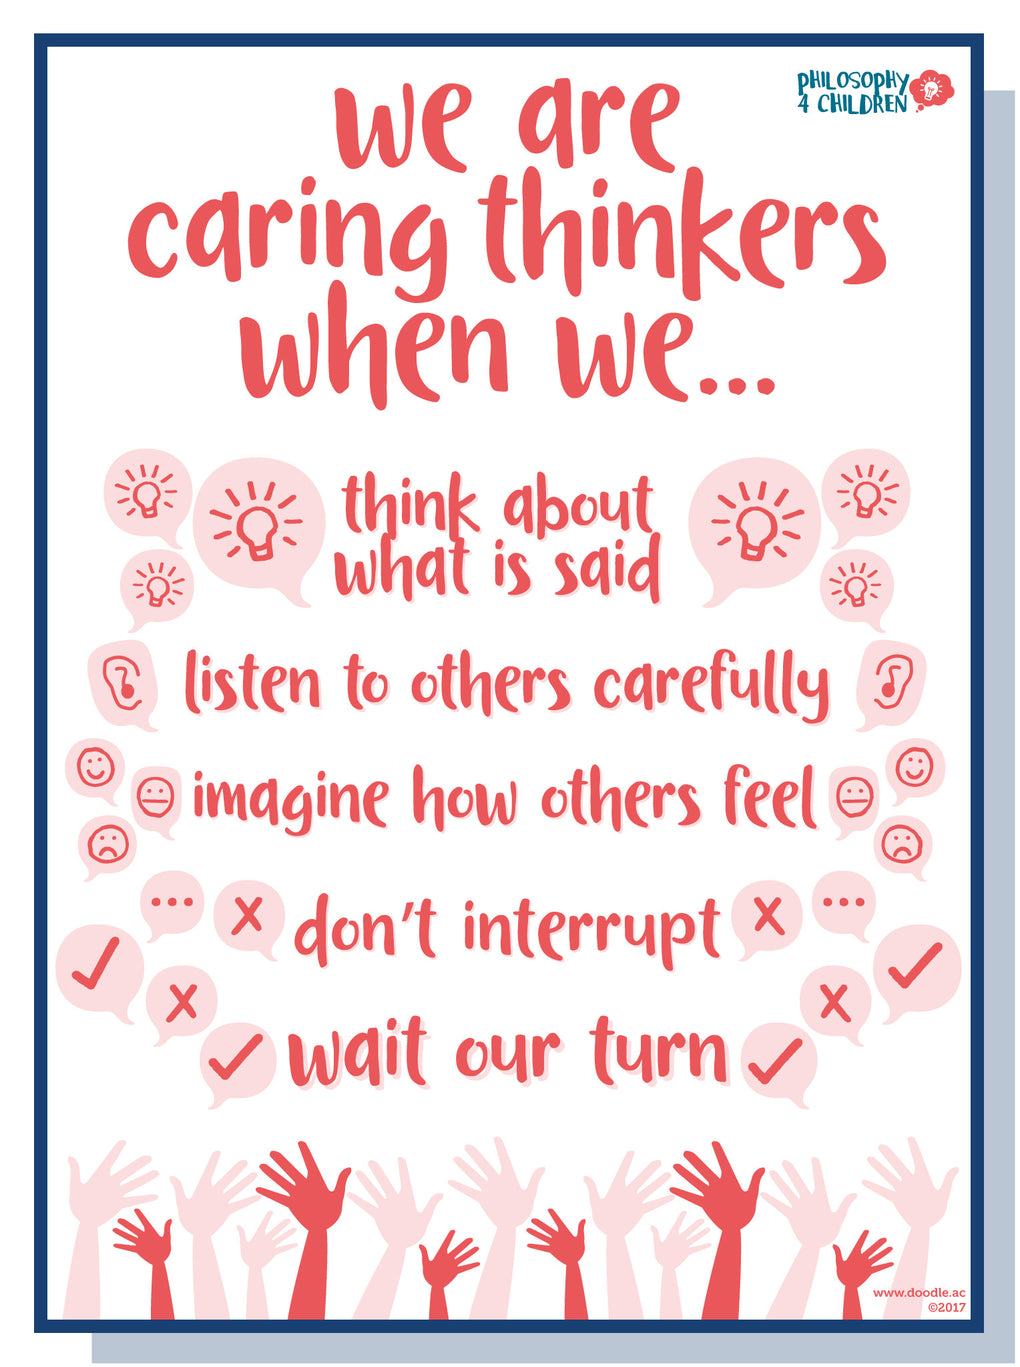 We are caring thinkers